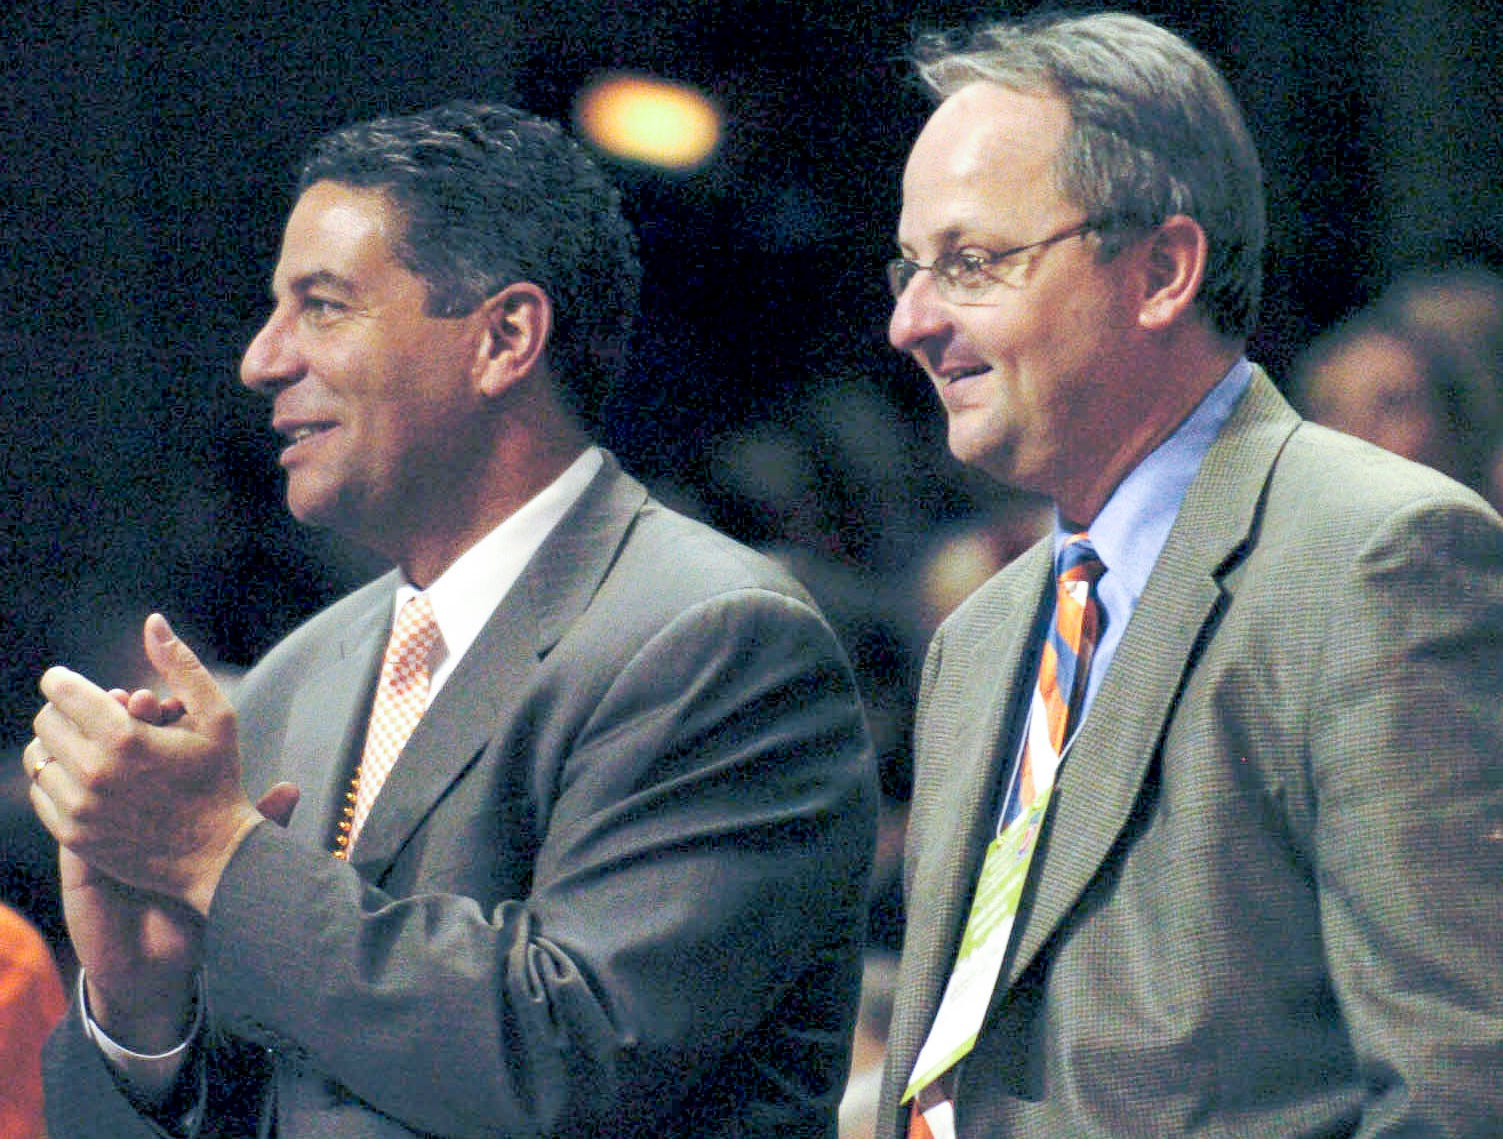 Tennessee men's basketball coach Bruce Pearl, left, watches the Lady Vols play Rutgers with UT Athletics Director Mike Hamilton March 29, 2005 at Thompson-Boling Arena. Pearl just signed a five-year UT contract worth $800,000 annually after Buzz Peterson was fired March 13.